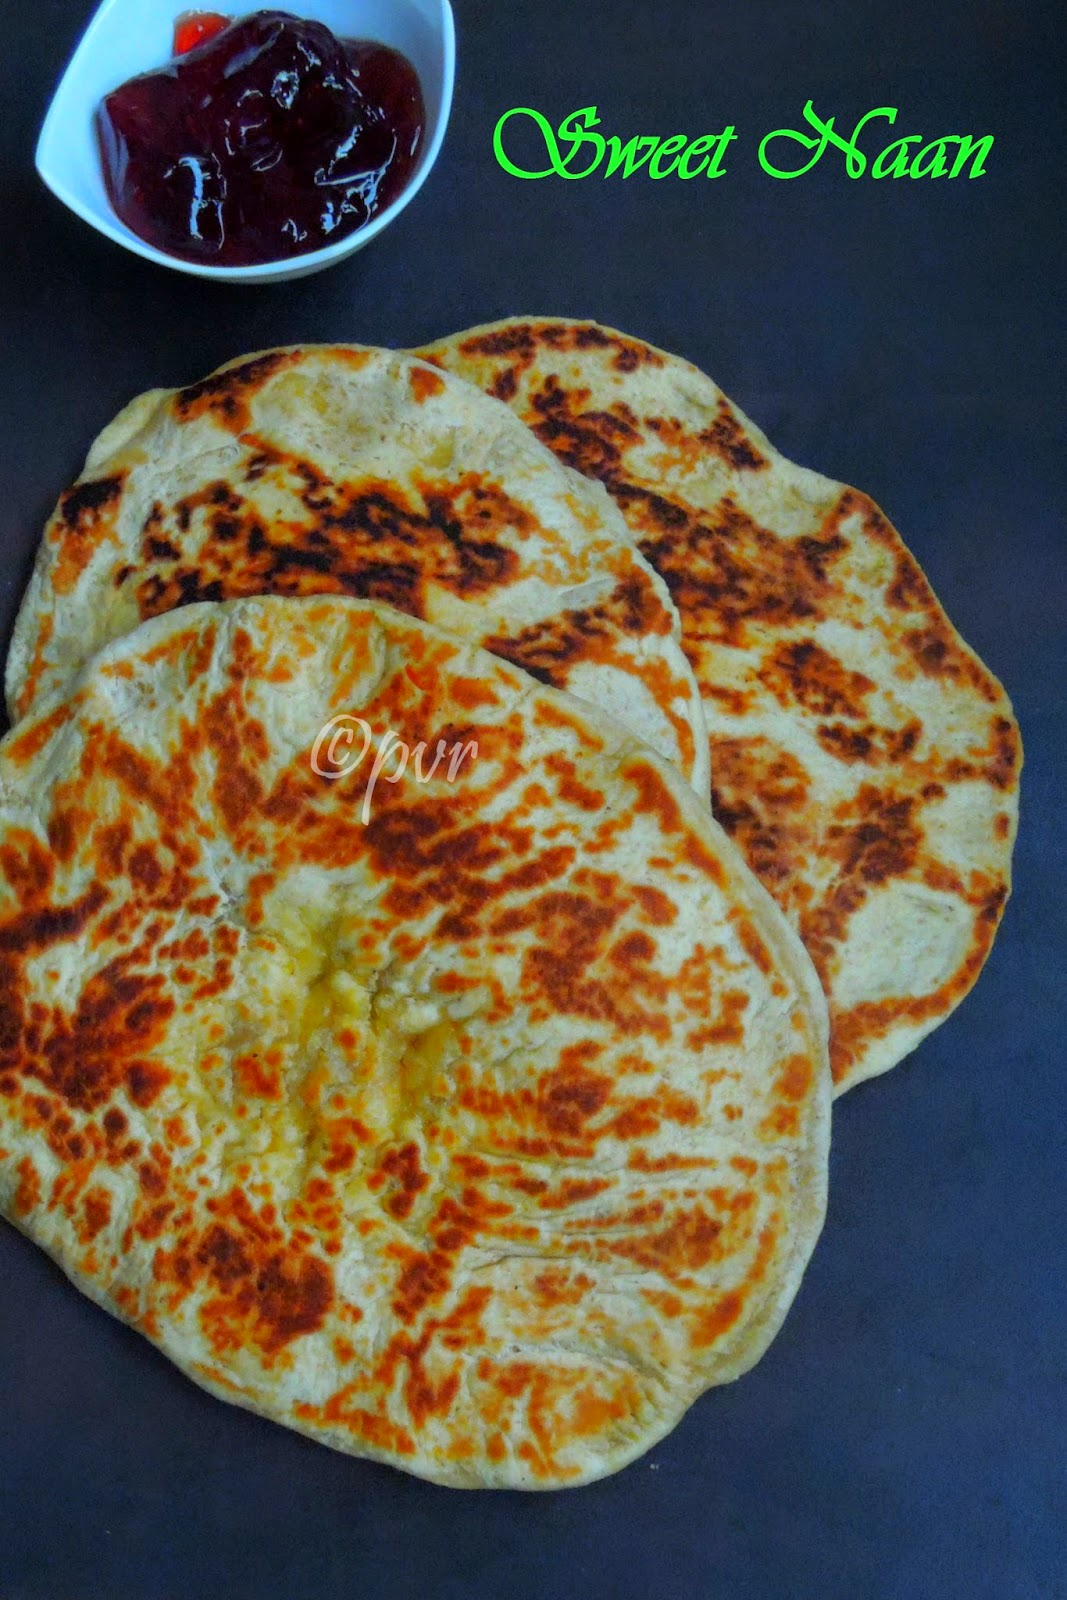 Orange flavoured sweet naan